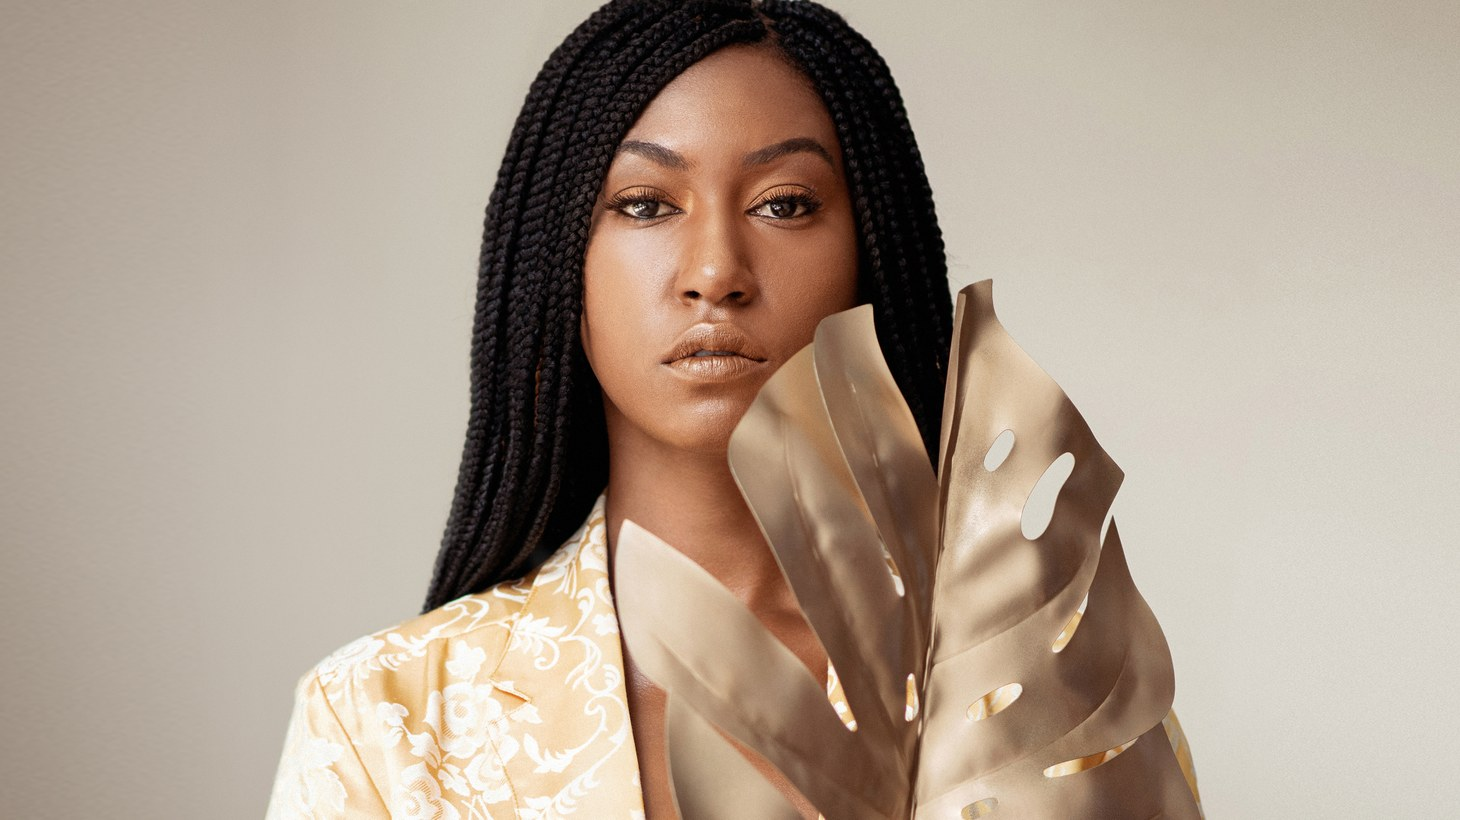 """Canadian artist Dominique Fils-Aime must have a time-traveling machine because """"While We Wait"""" sounds like it was lifted from a 50's girl group and dropped into today's current issues with a little gospel and soul sprinkled in."""